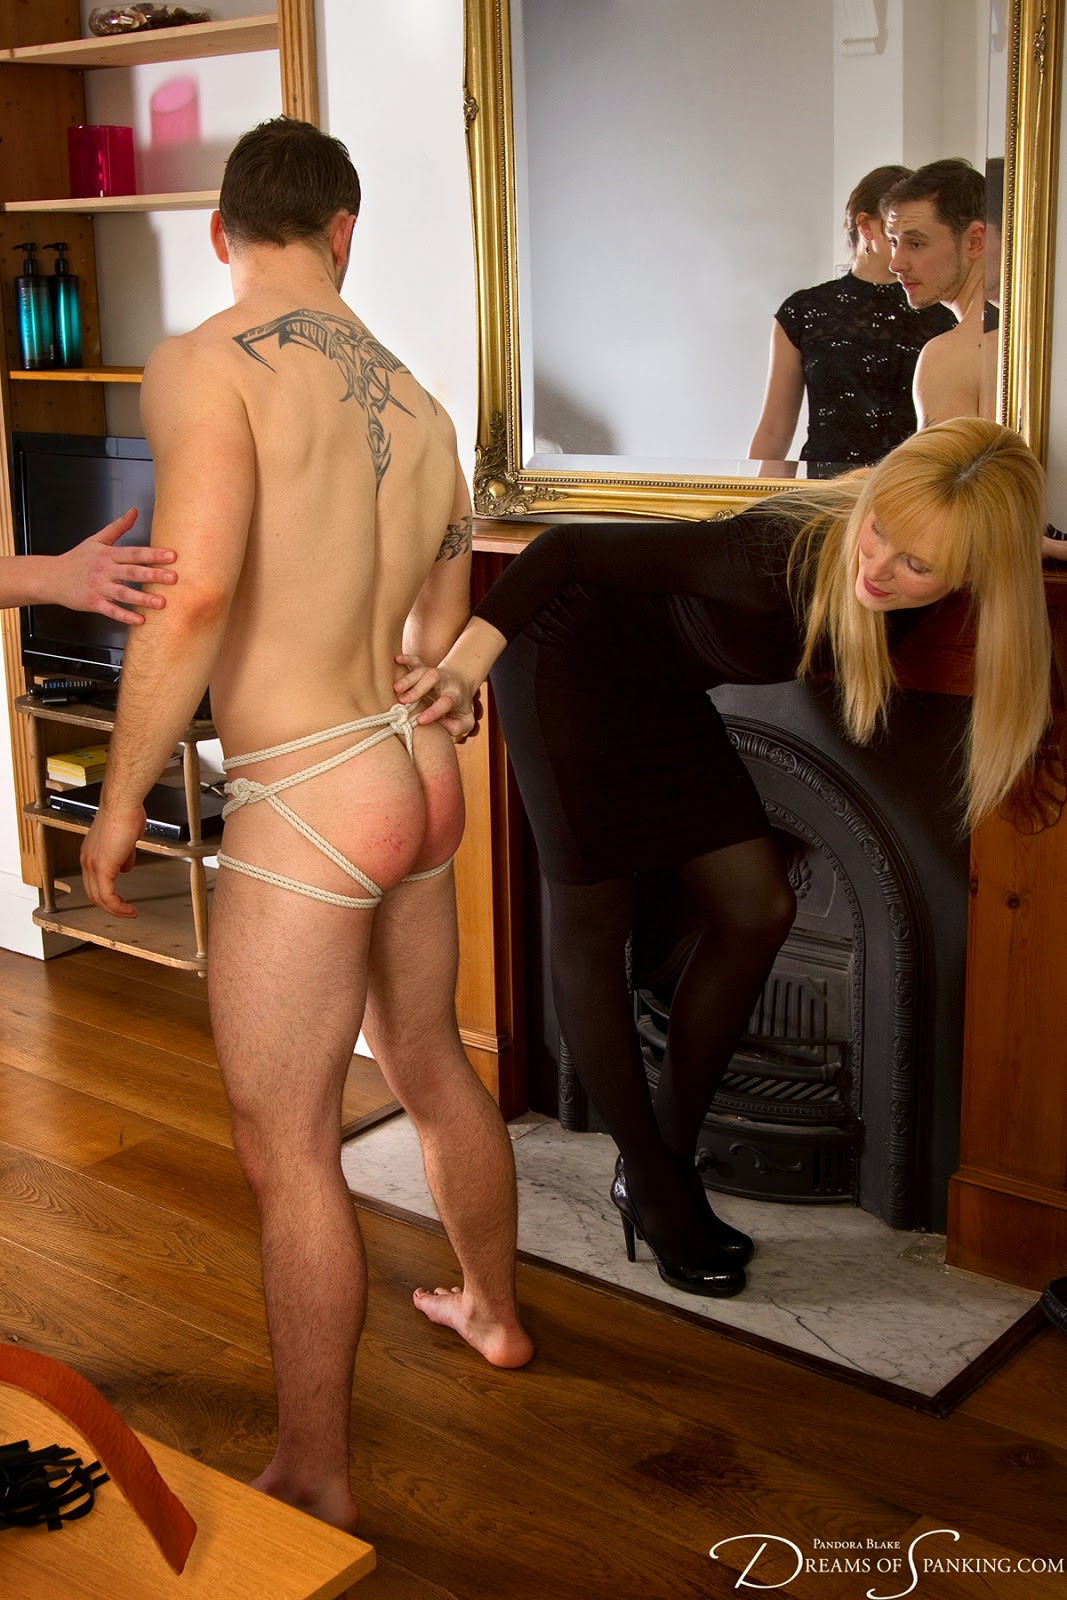 free milf pantyhose picture calleries